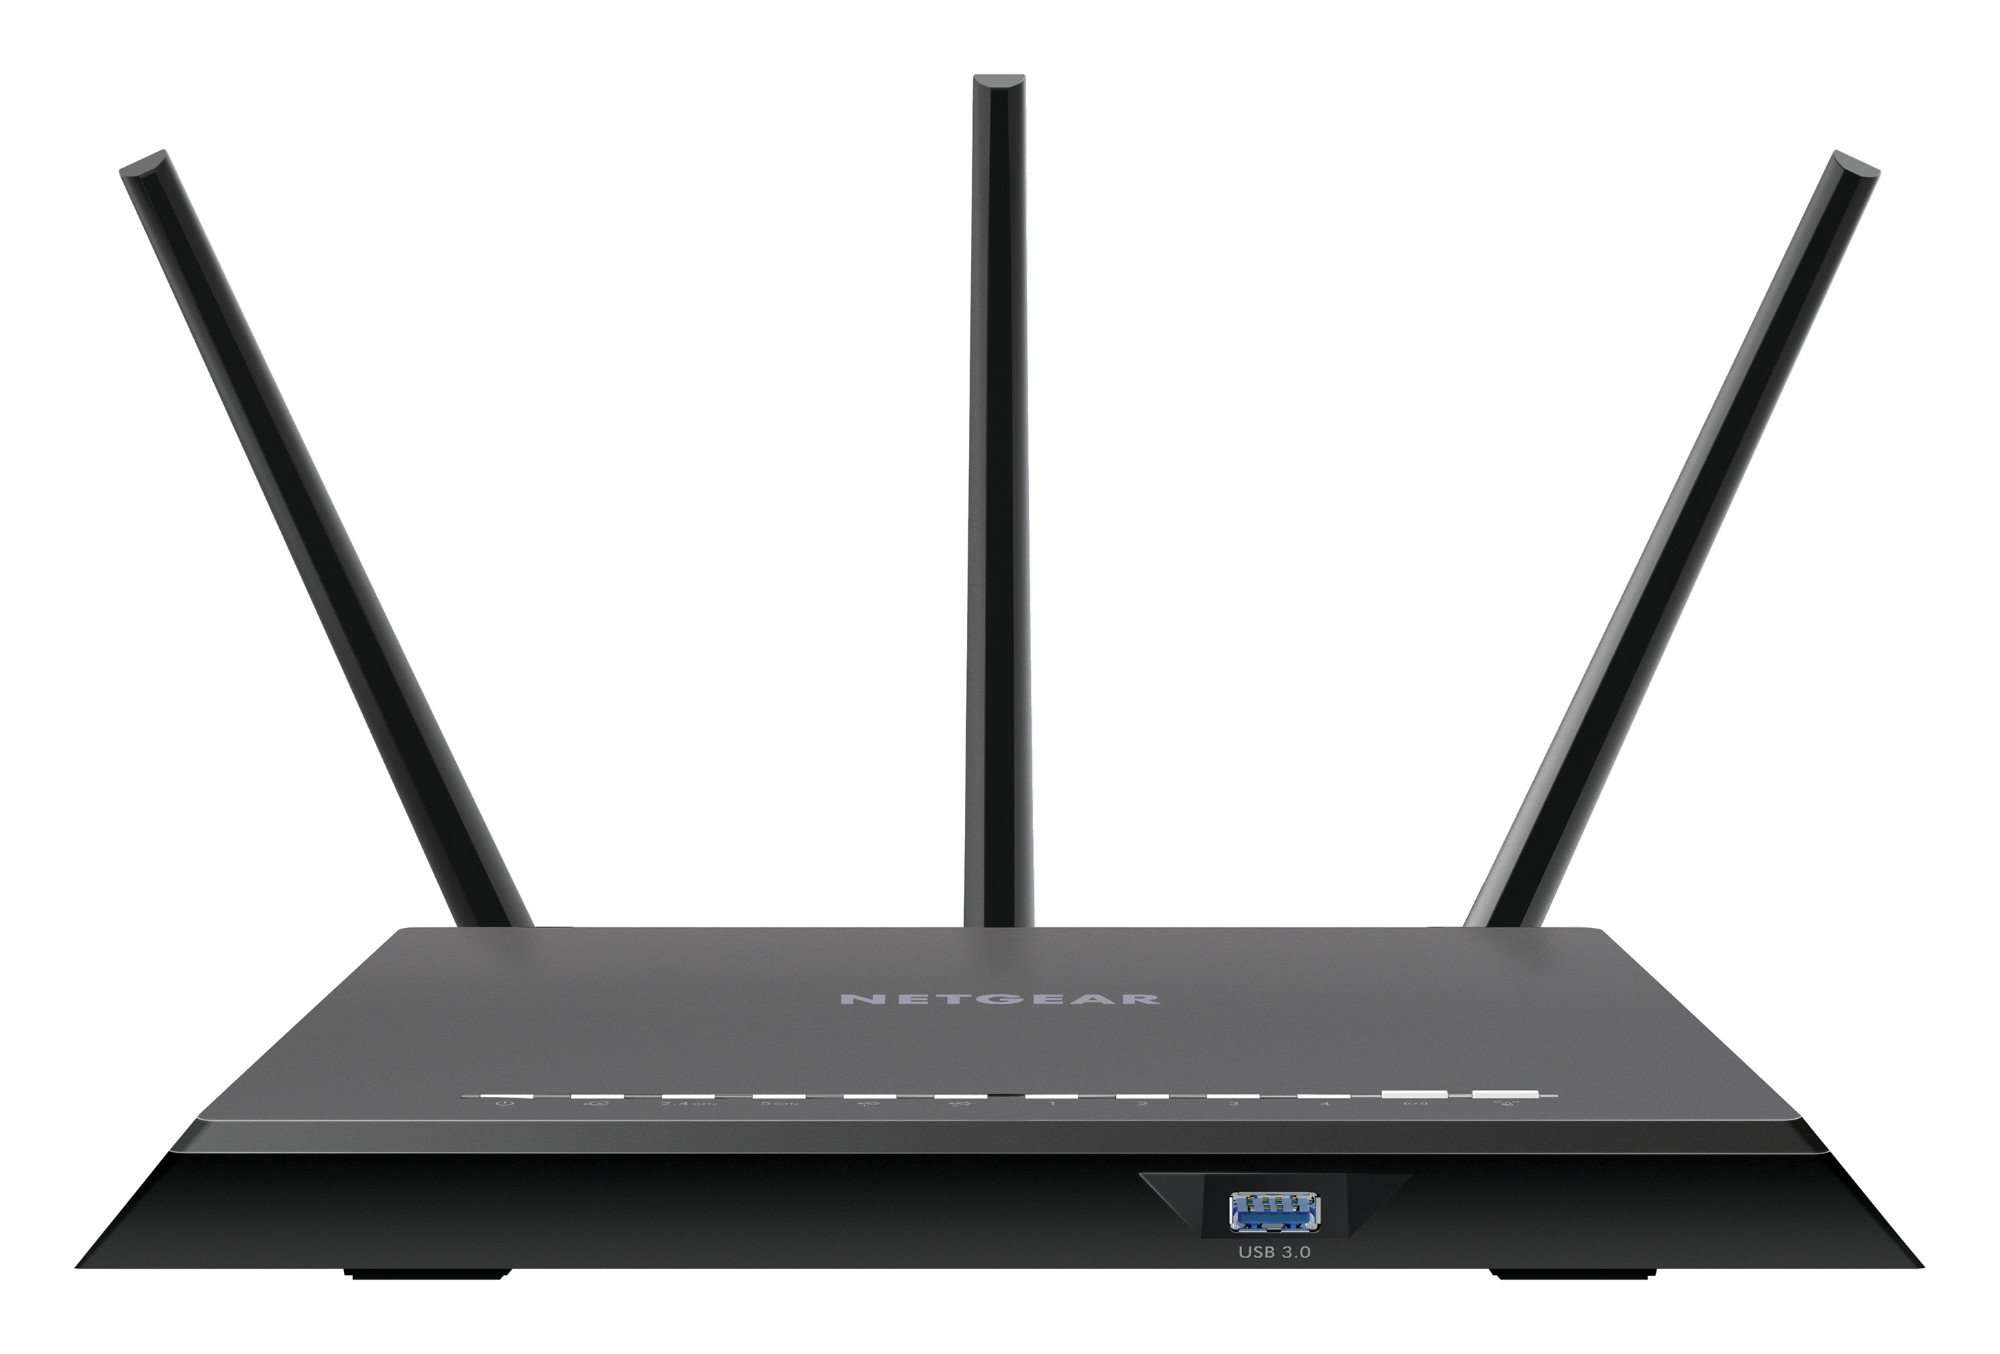 Netgear R7000 router inalámbrico Doble banda (2,4 GHz / 5 GHz) Gigabit Ethernet Negro